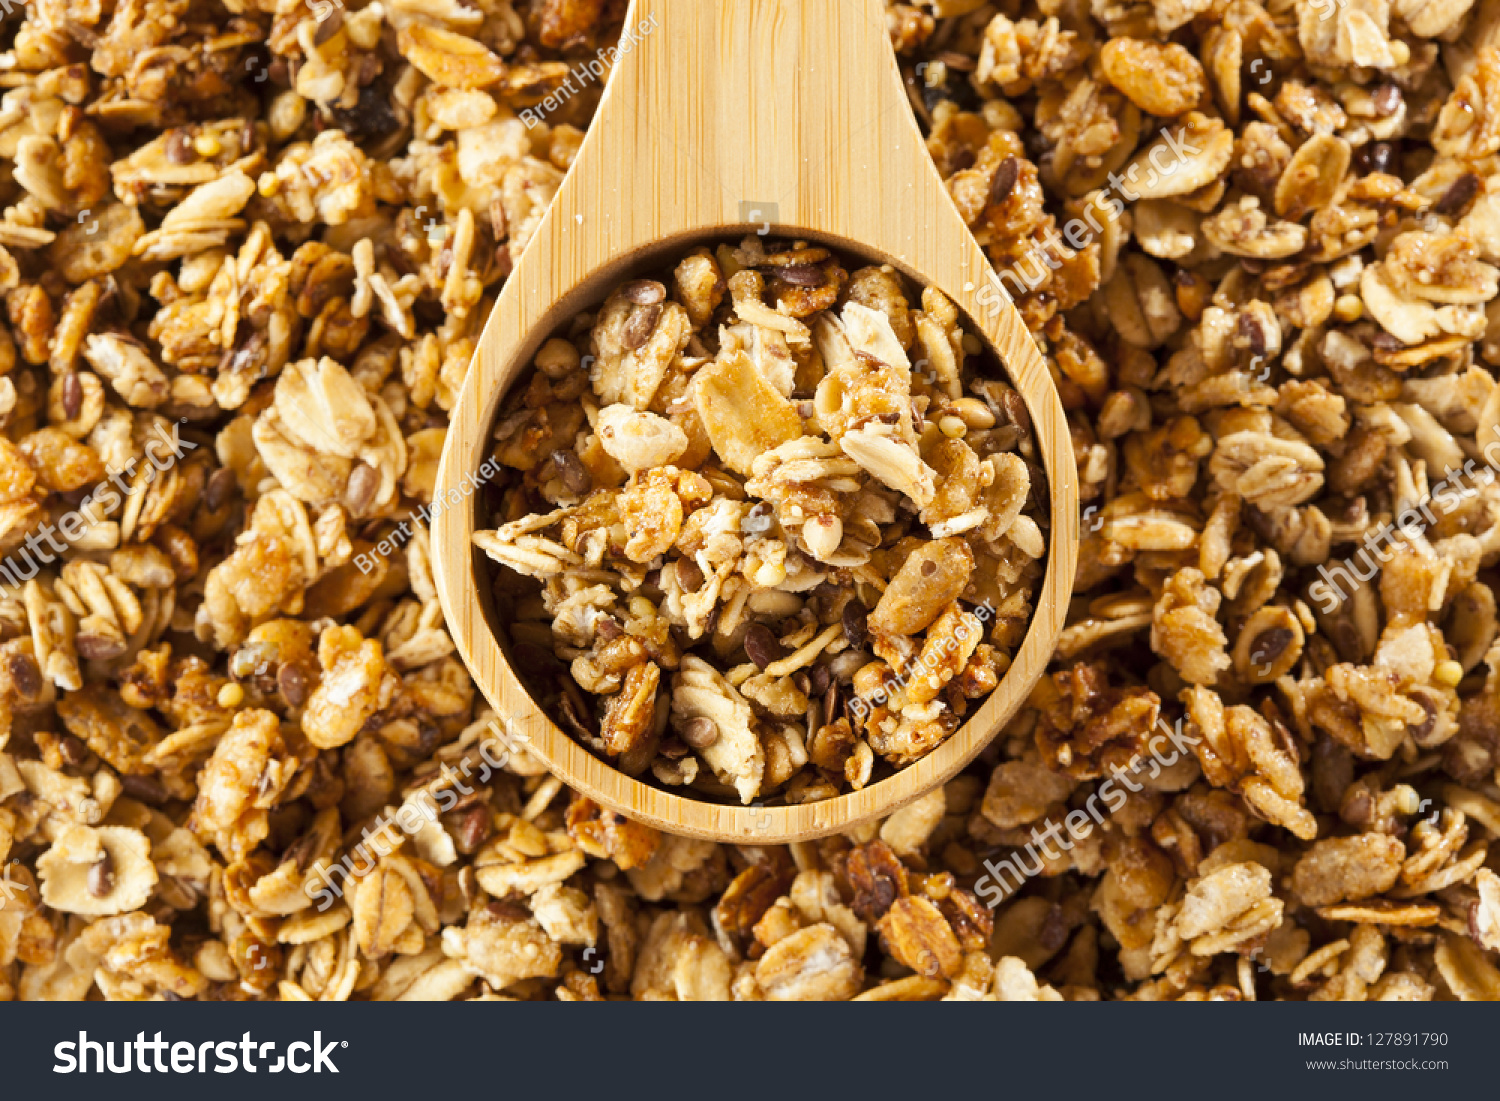 how to cook flax seeds with oats